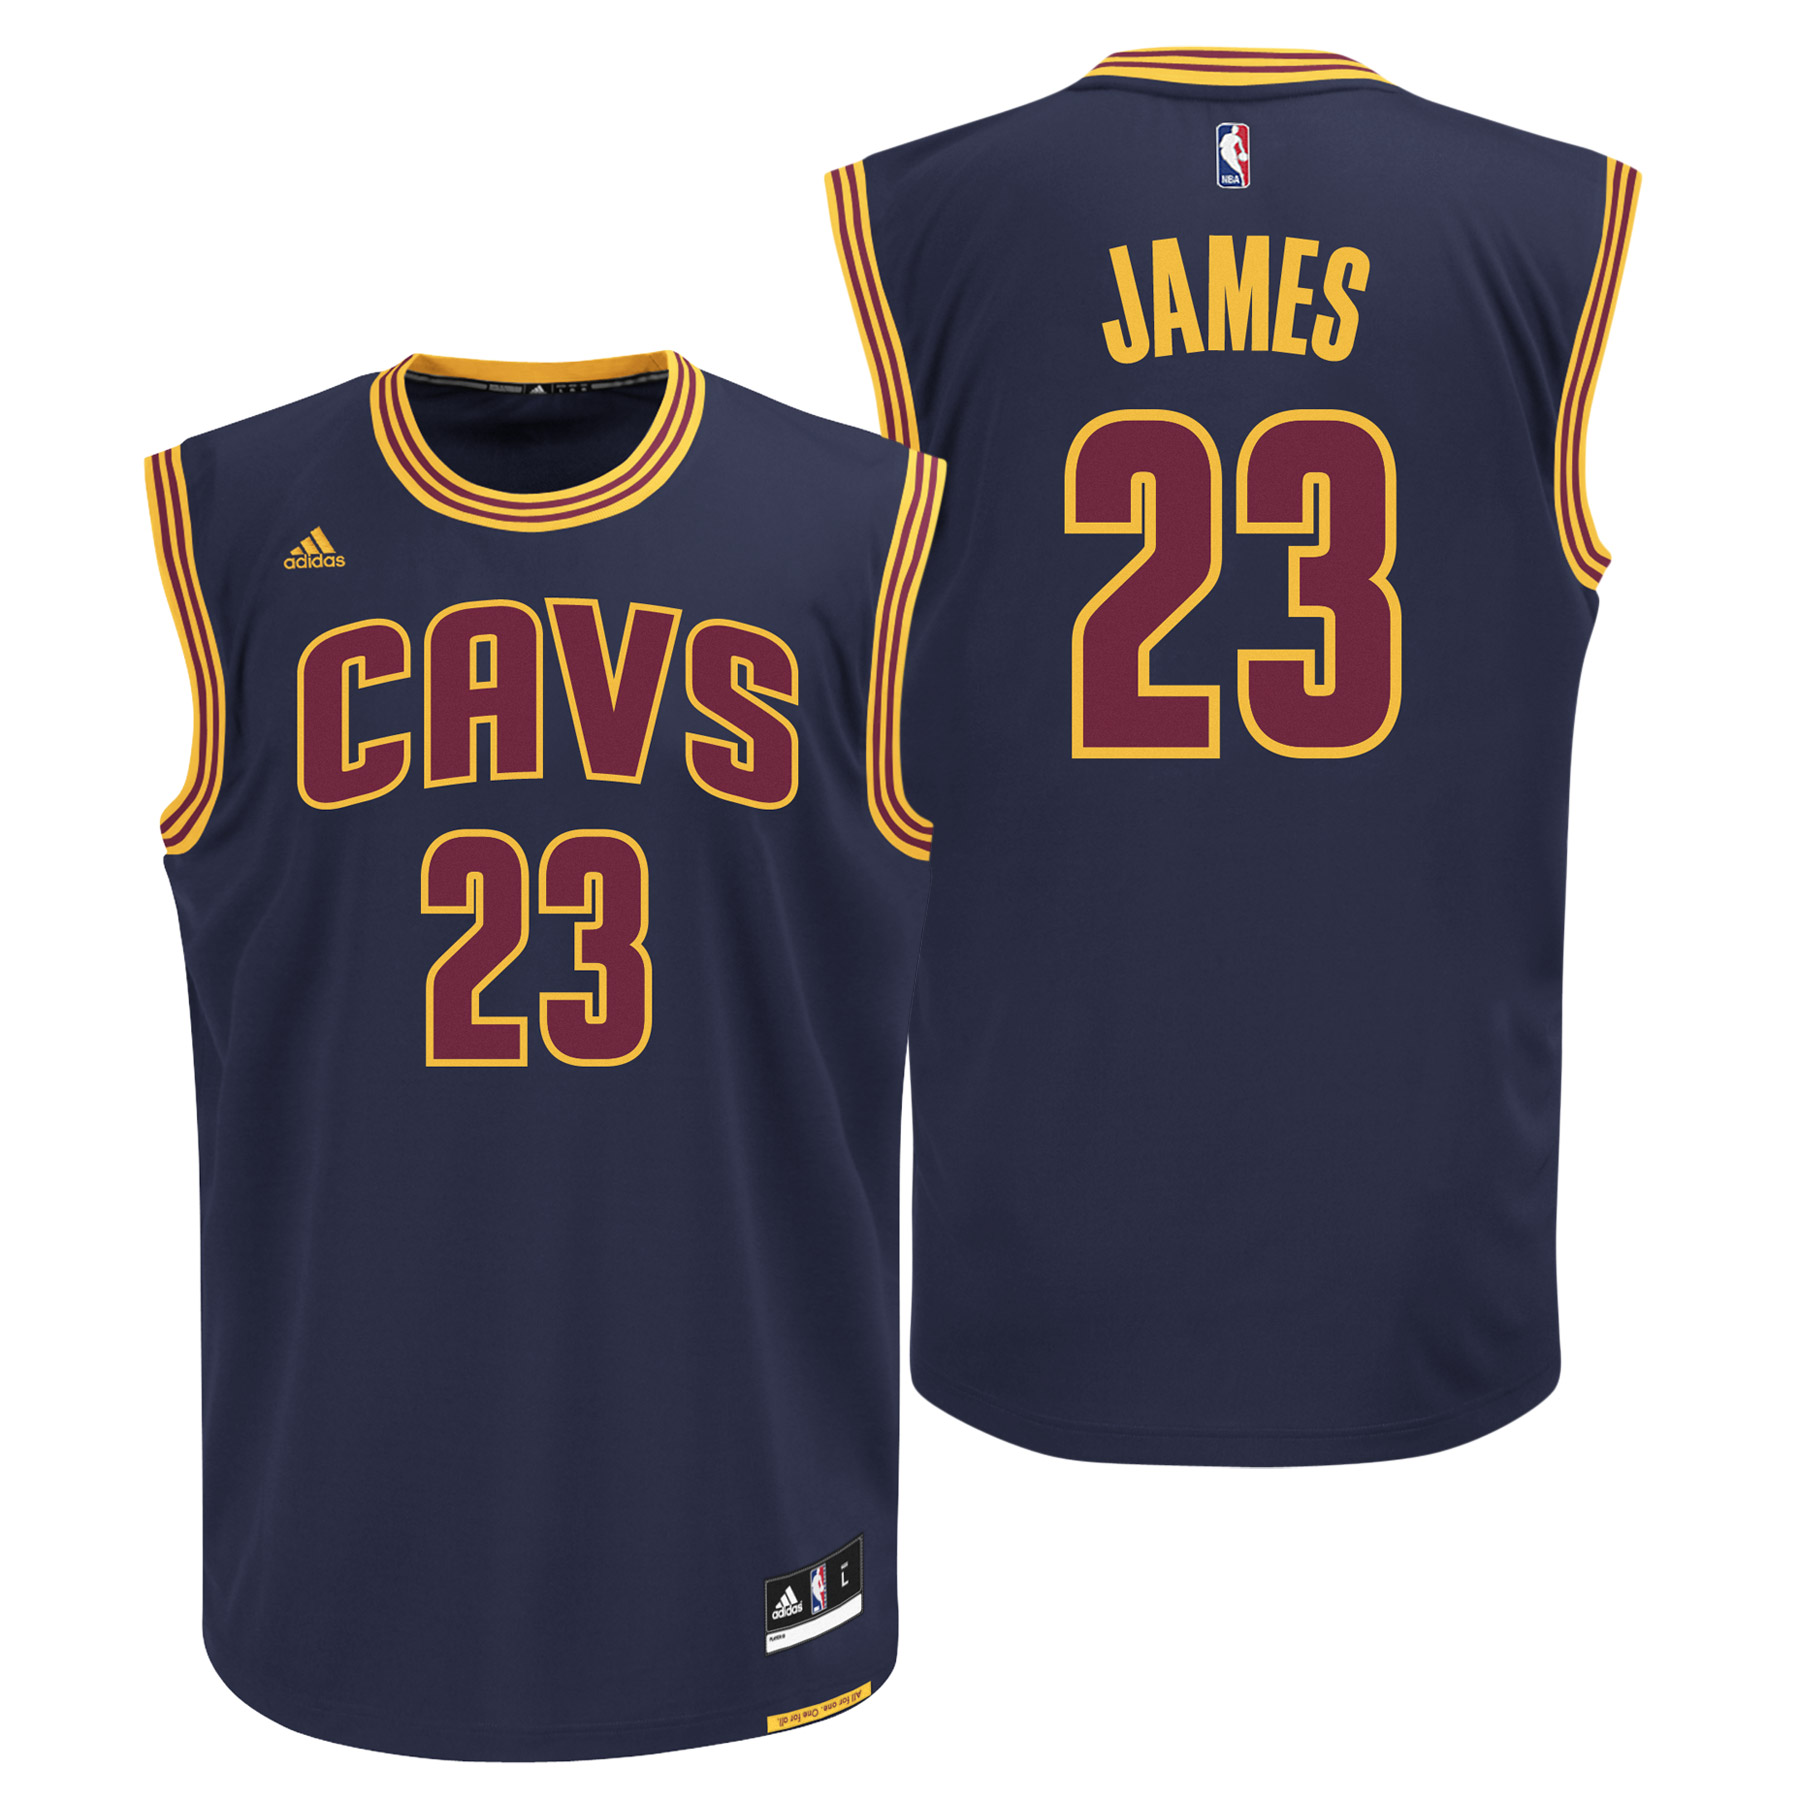 Cleveland Cavaliers Road Alternate Replica Jersey - Lebron James - You